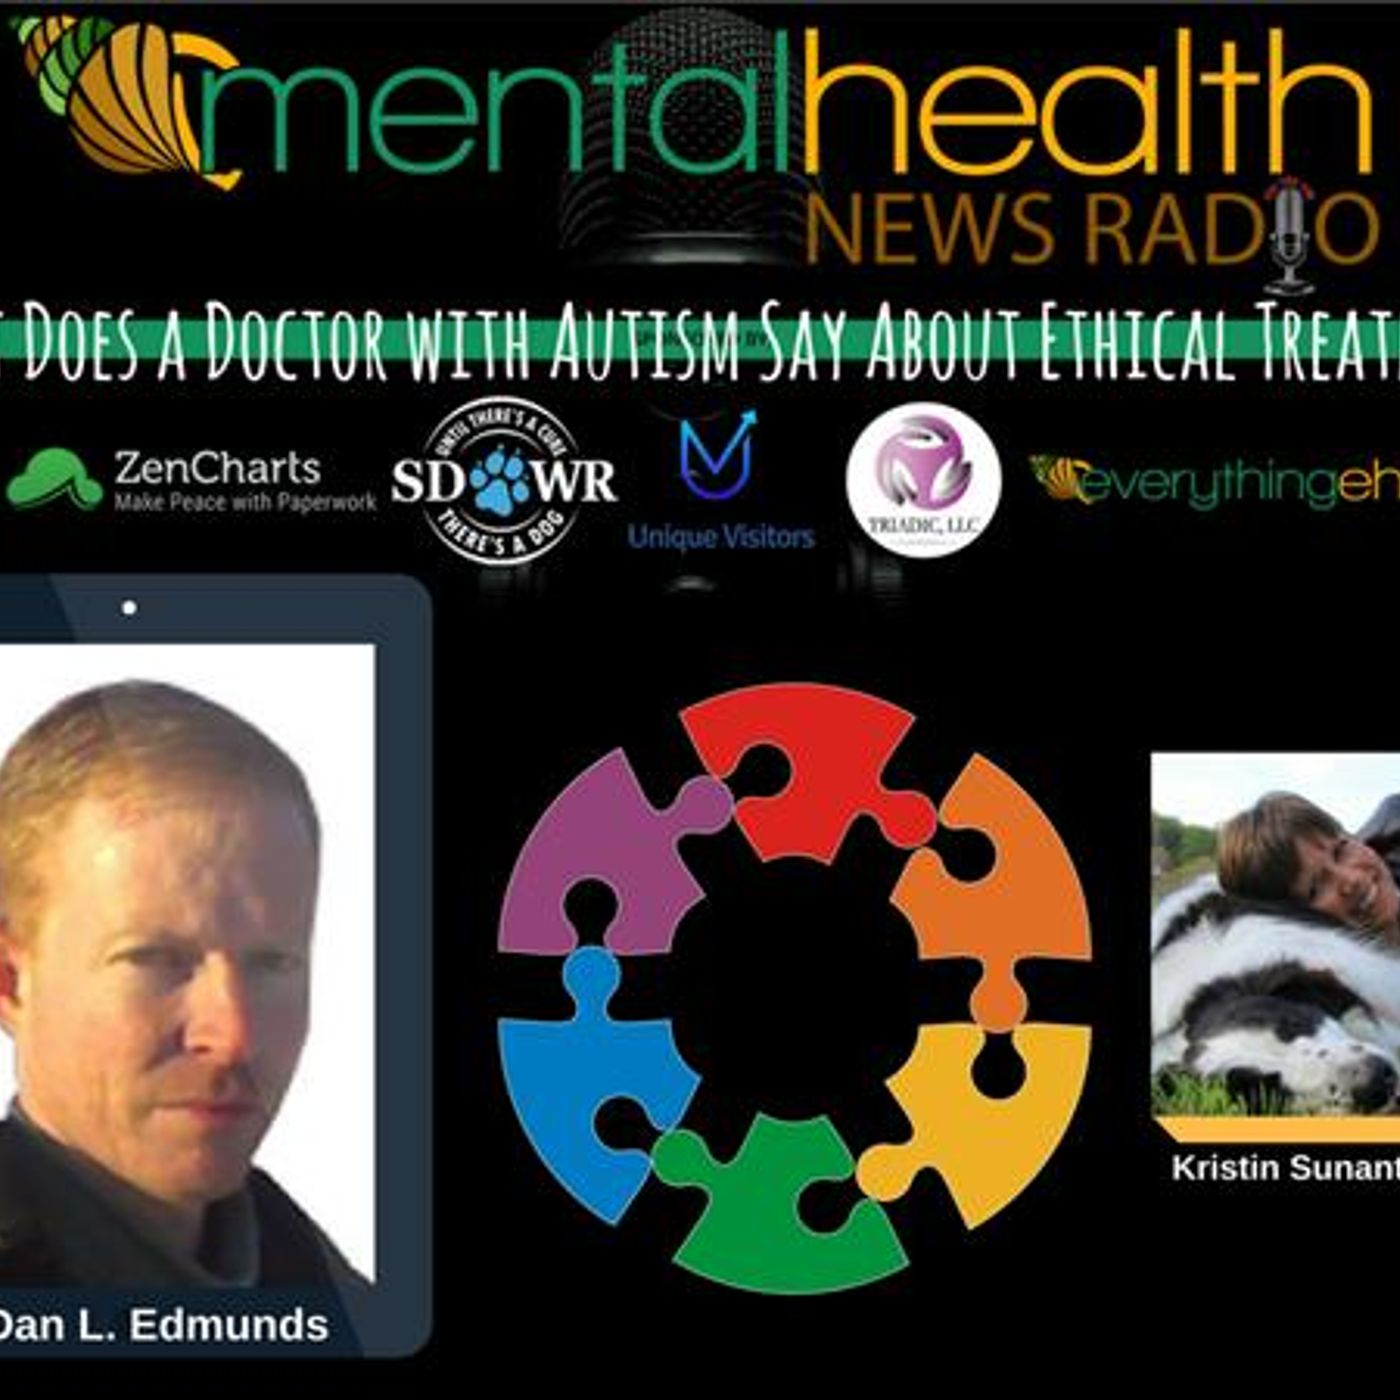 Mental Health News Radio - What Does a Doctor with Autism Say About Ethical Treatment: Dr. Dan L. Edmunds